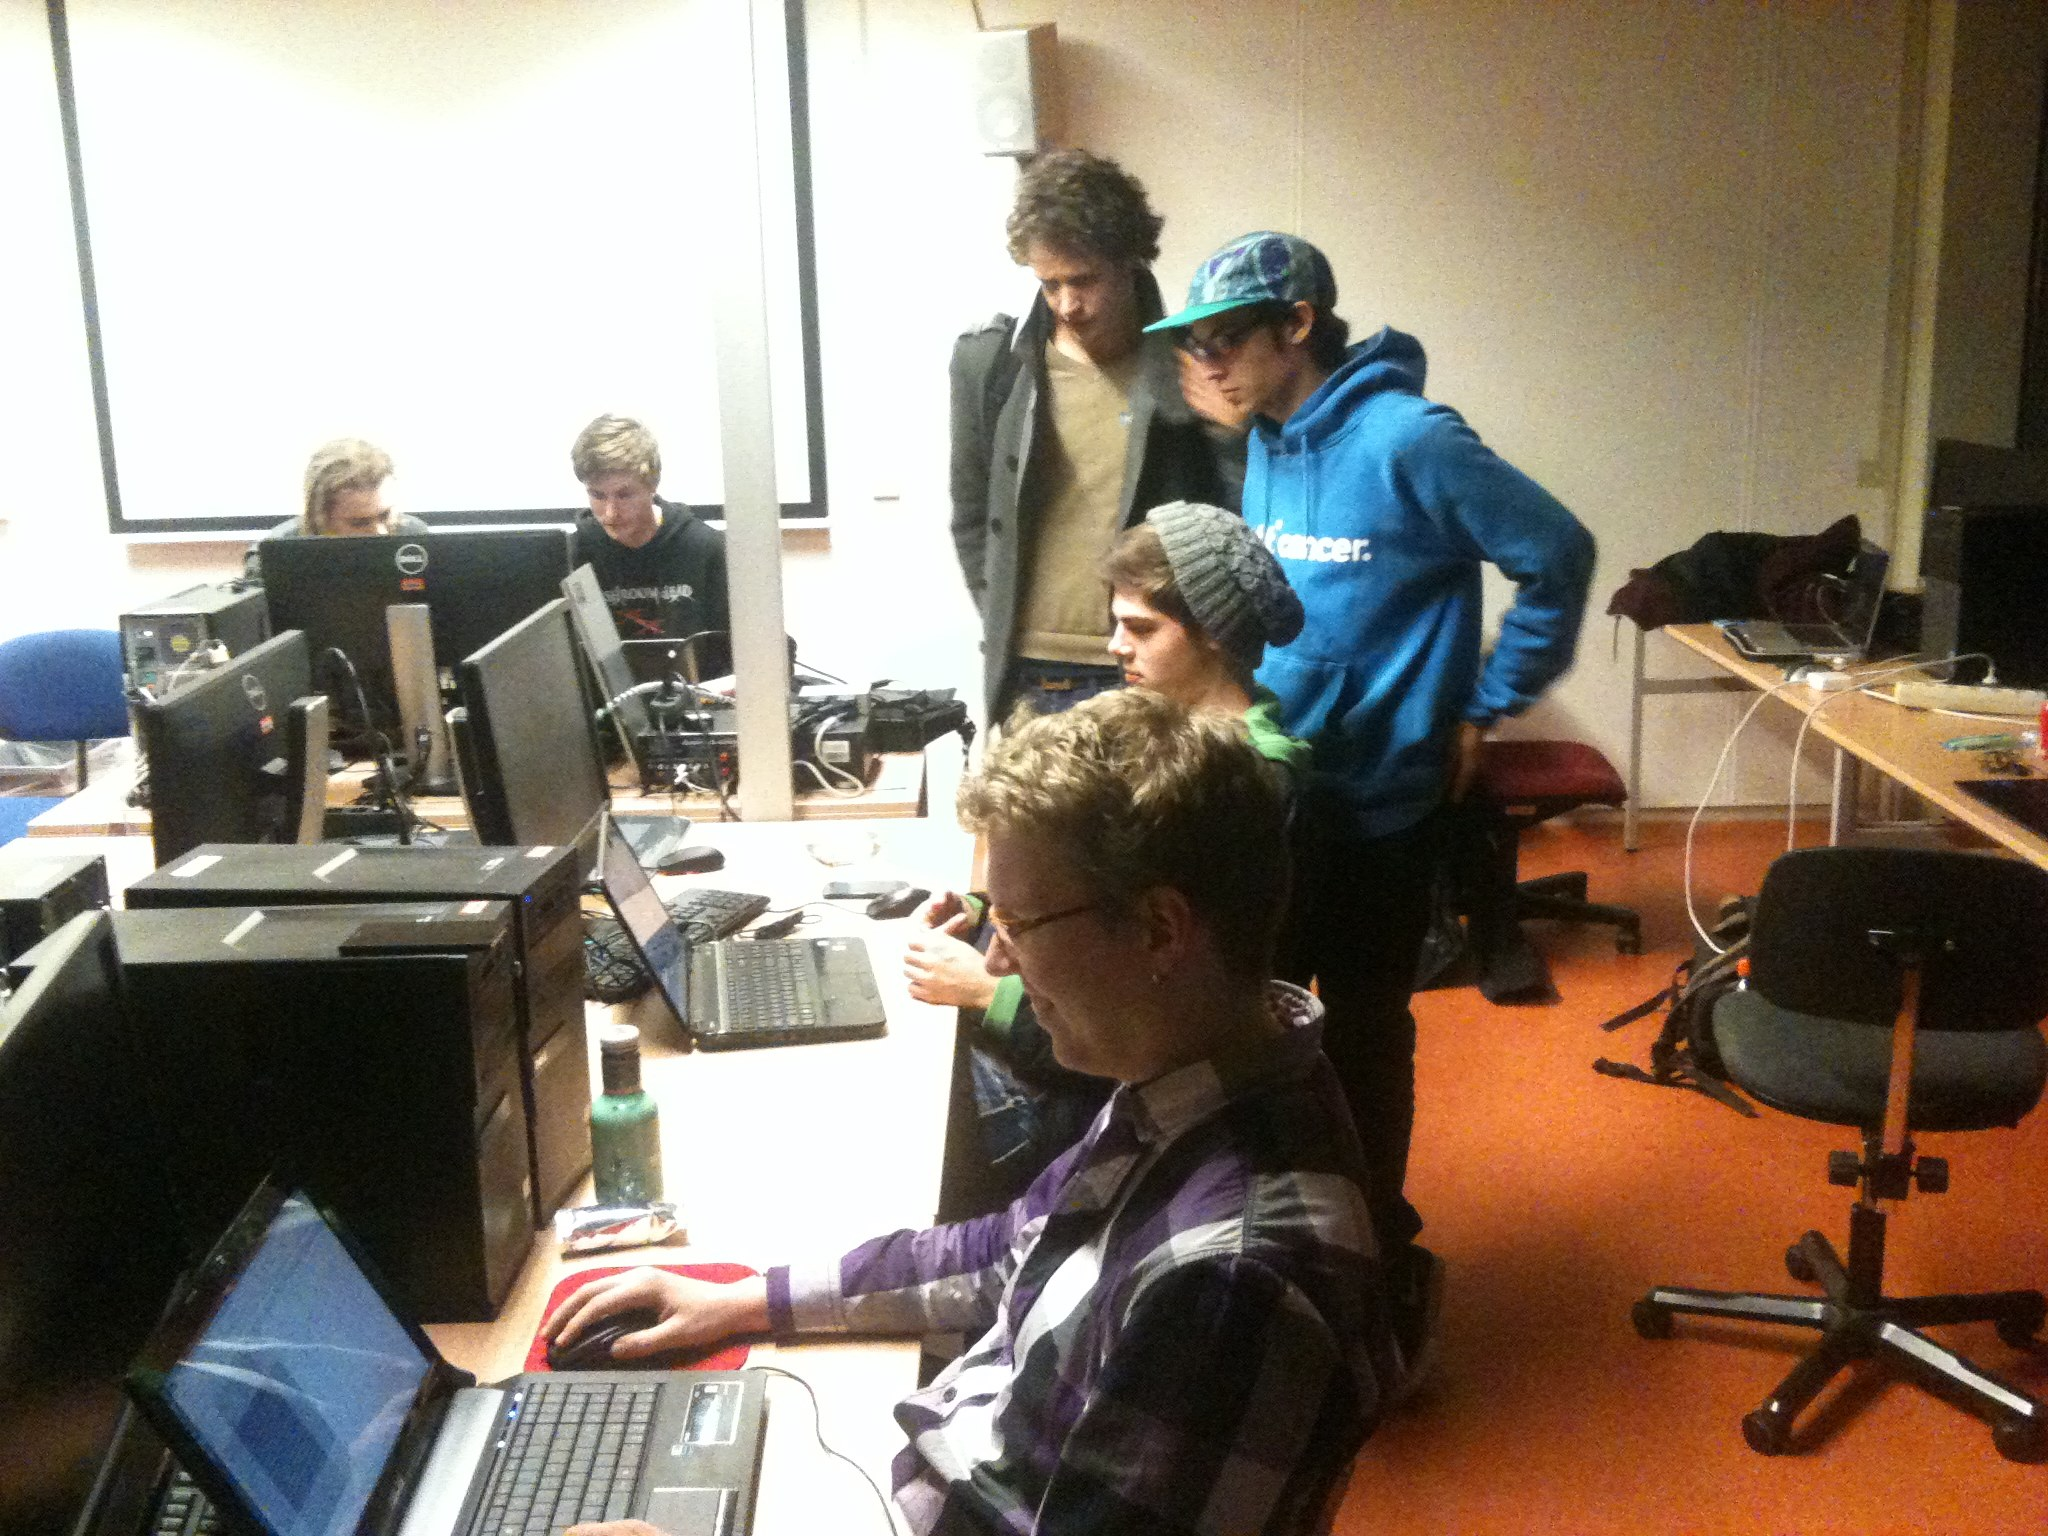 1 Hour Code Jam attendees